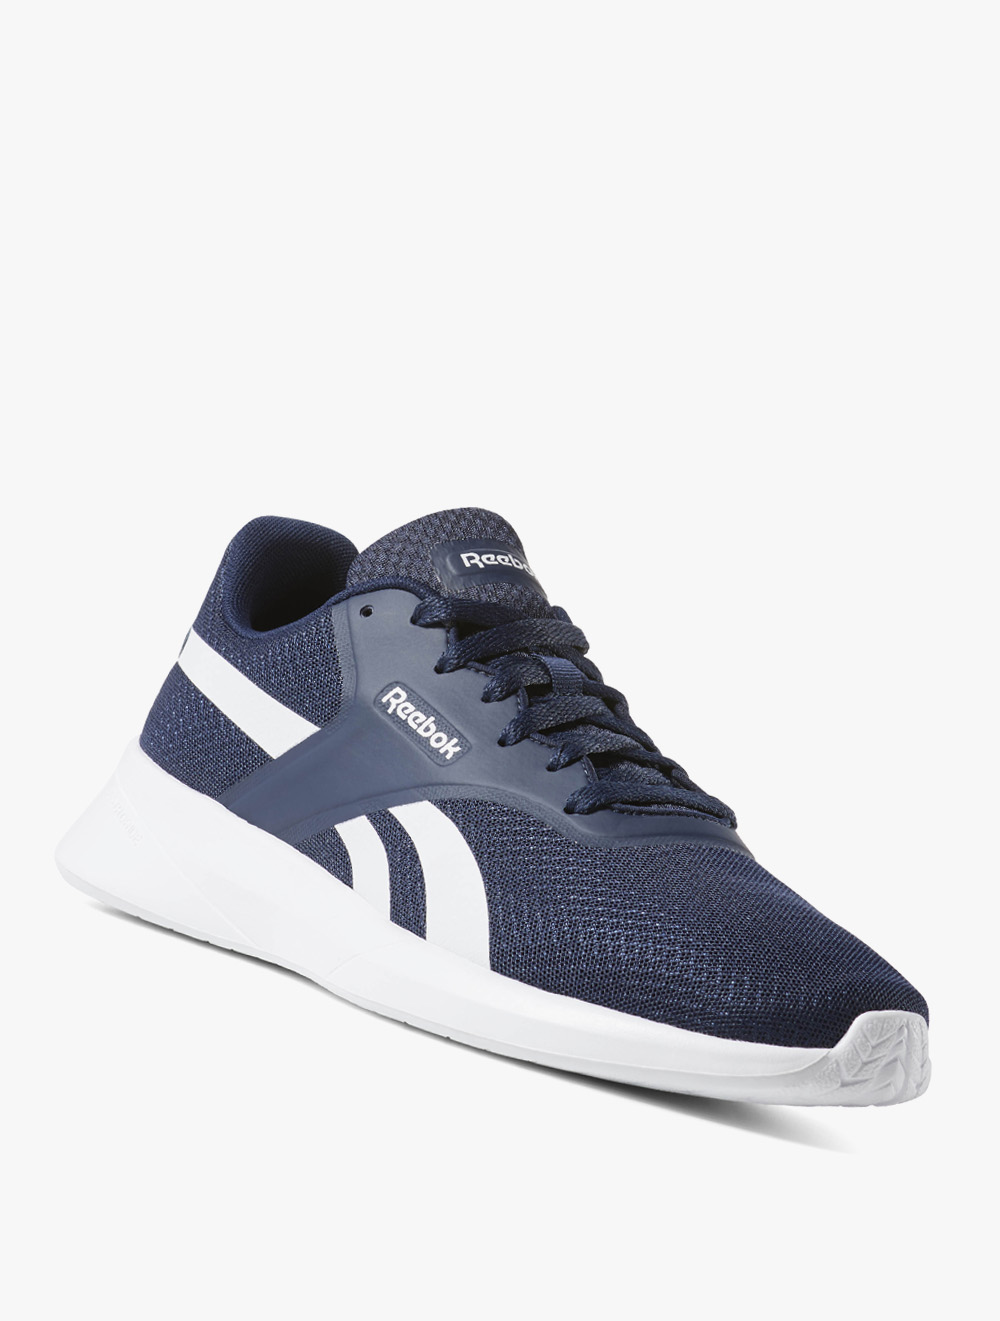 Reebok Sports From Shoes On Men's Planet Shop UMGSzqVp